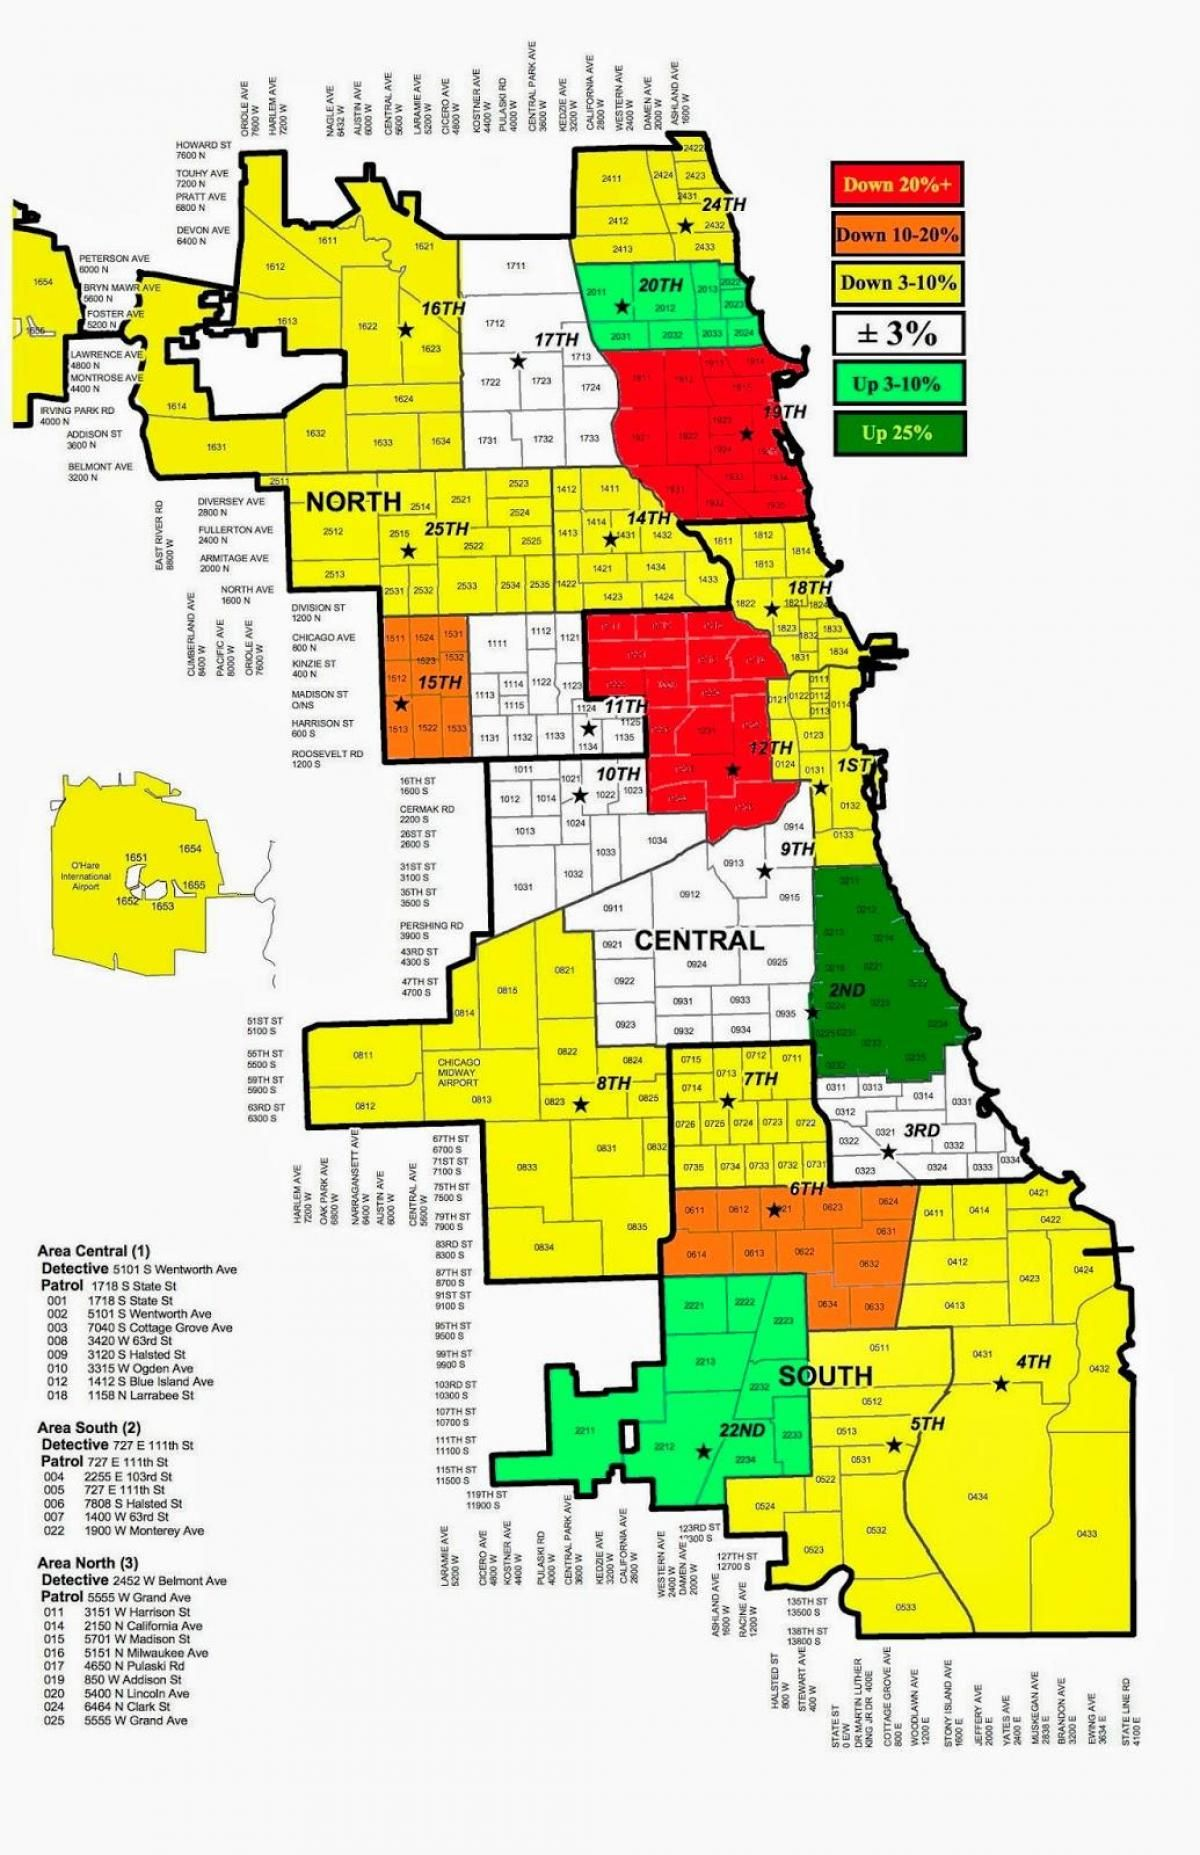 Chicago police crime map | Maps | Pinterest | Police crime, Chicago ...